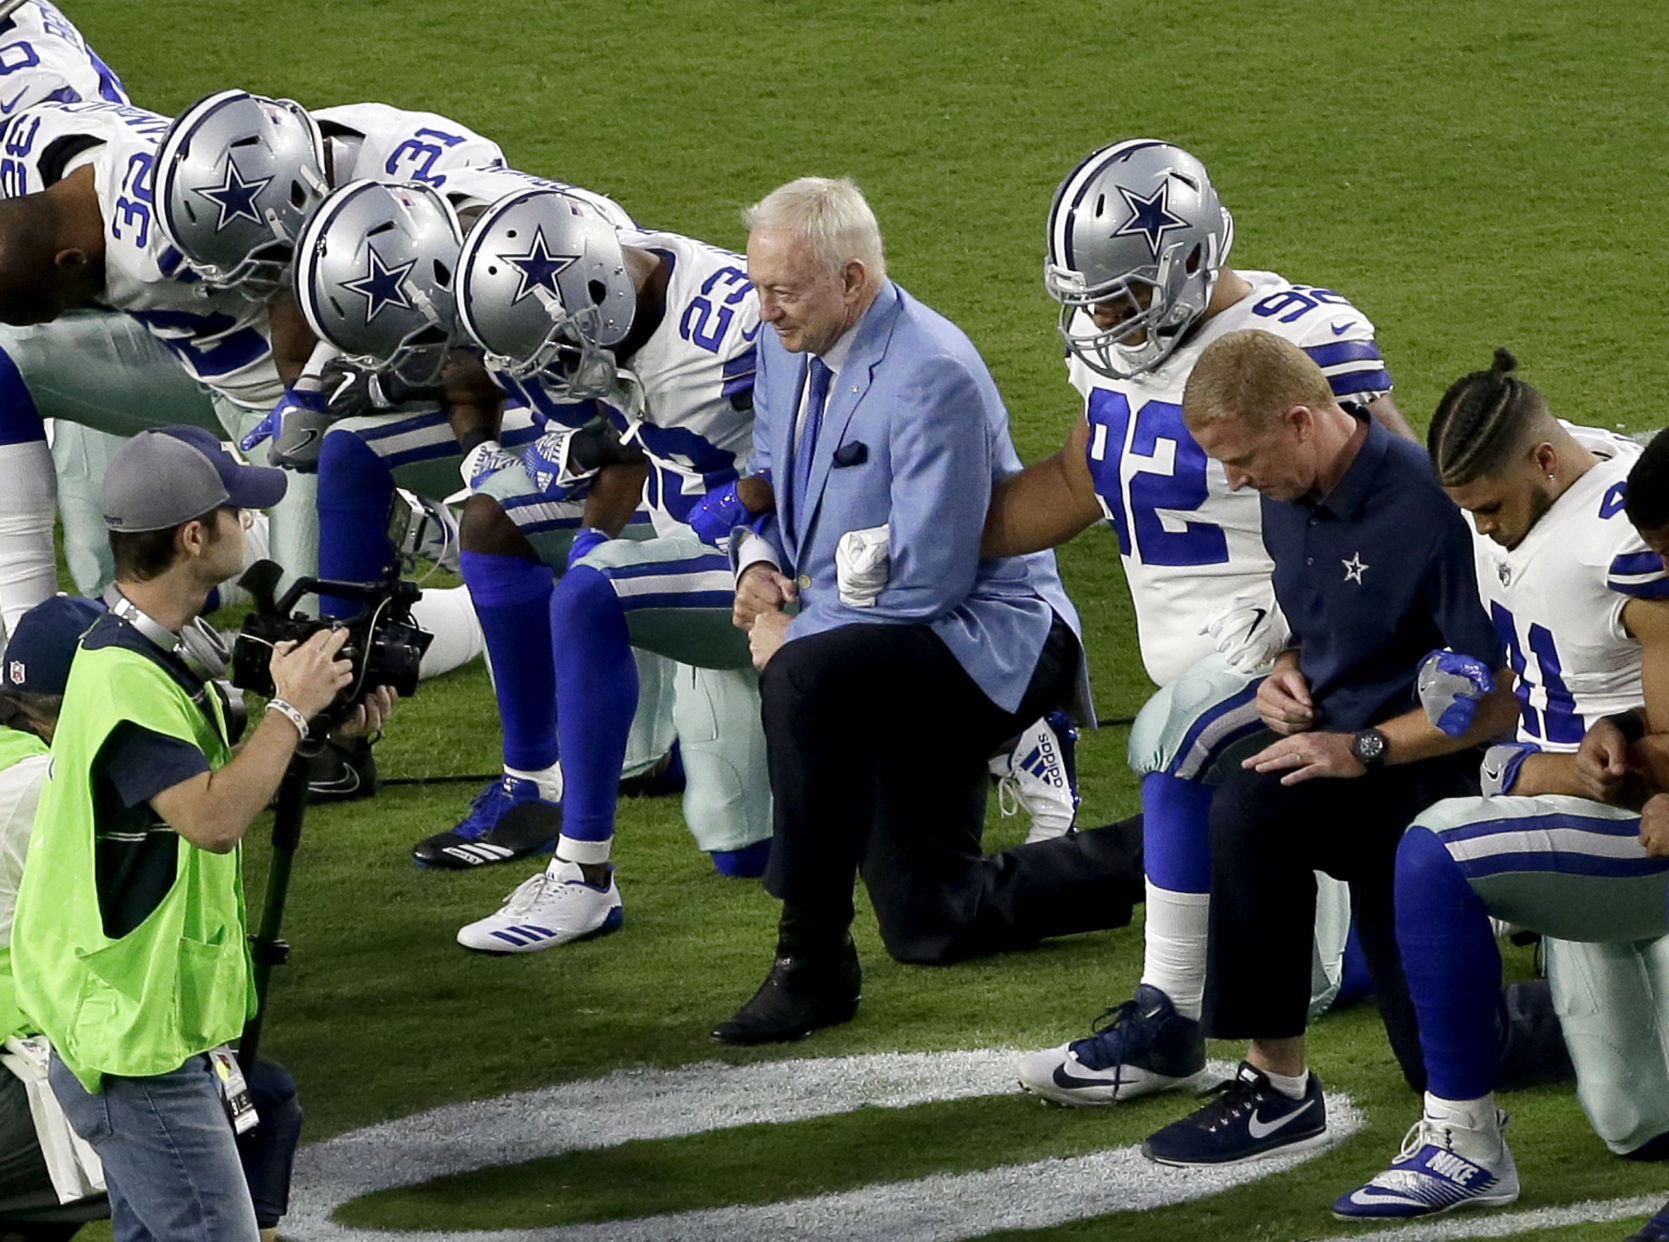 Trump claims Jerry Jones will get players to stop kneeling